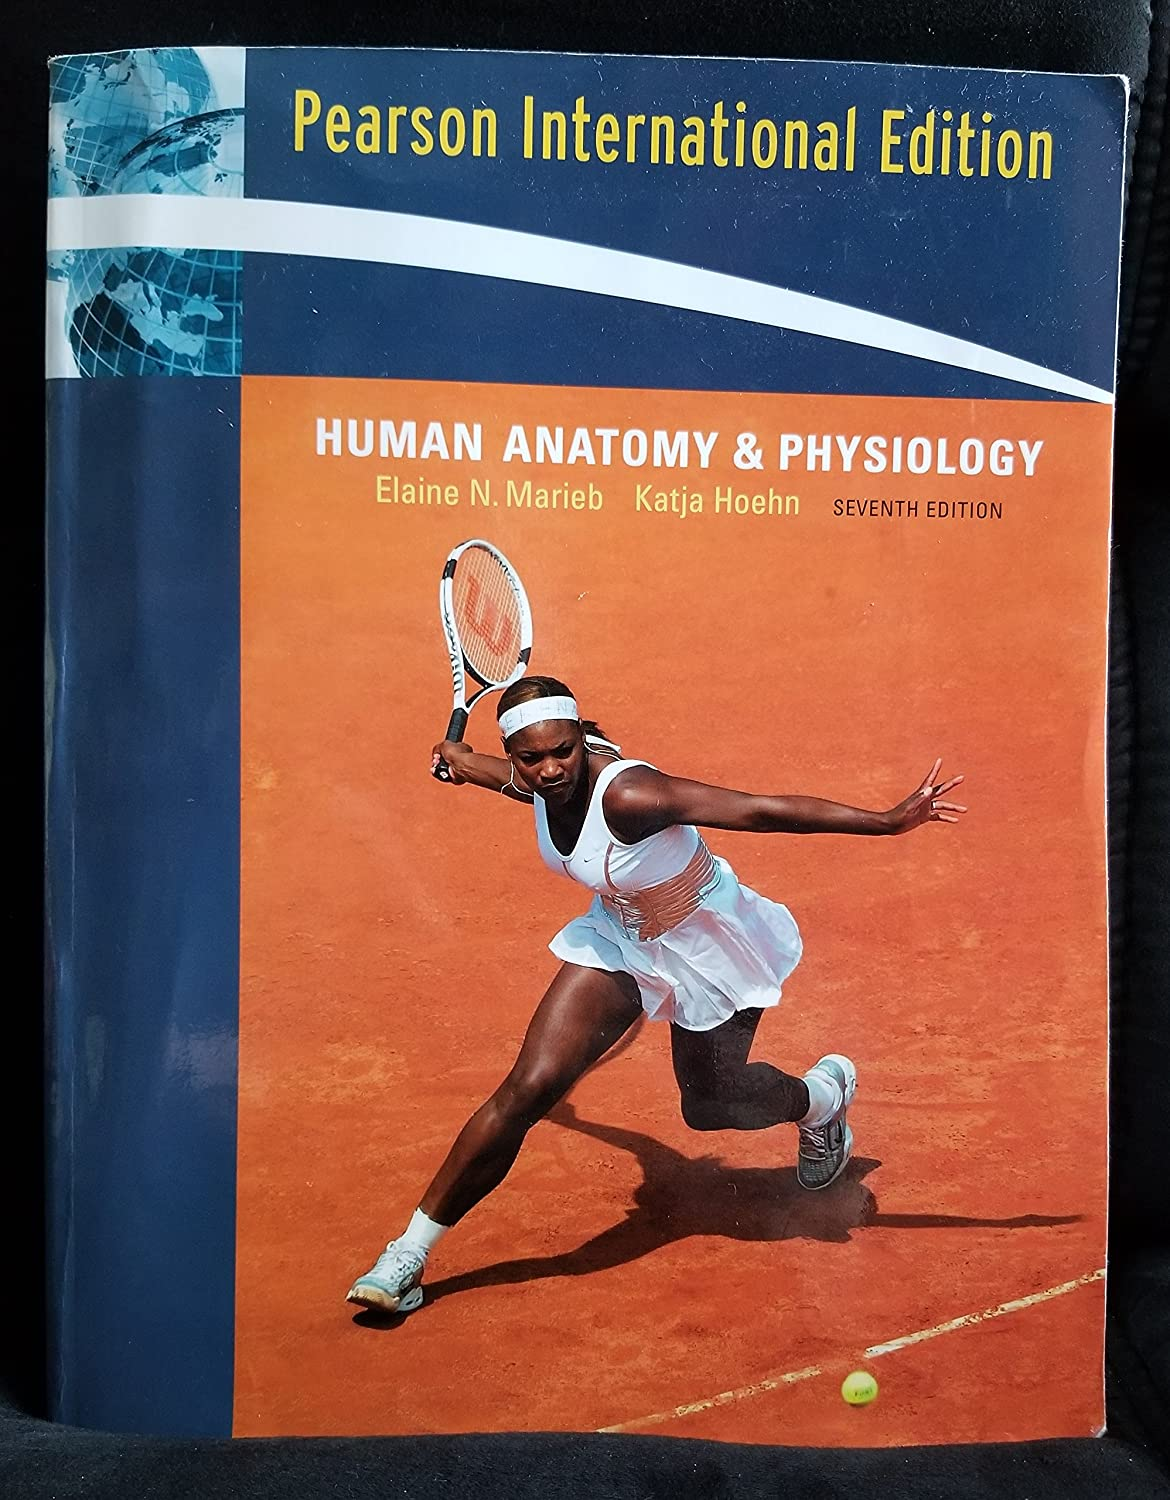 Amazon.com : Human Anatomy and Physiology 7th Edition : Everything Else